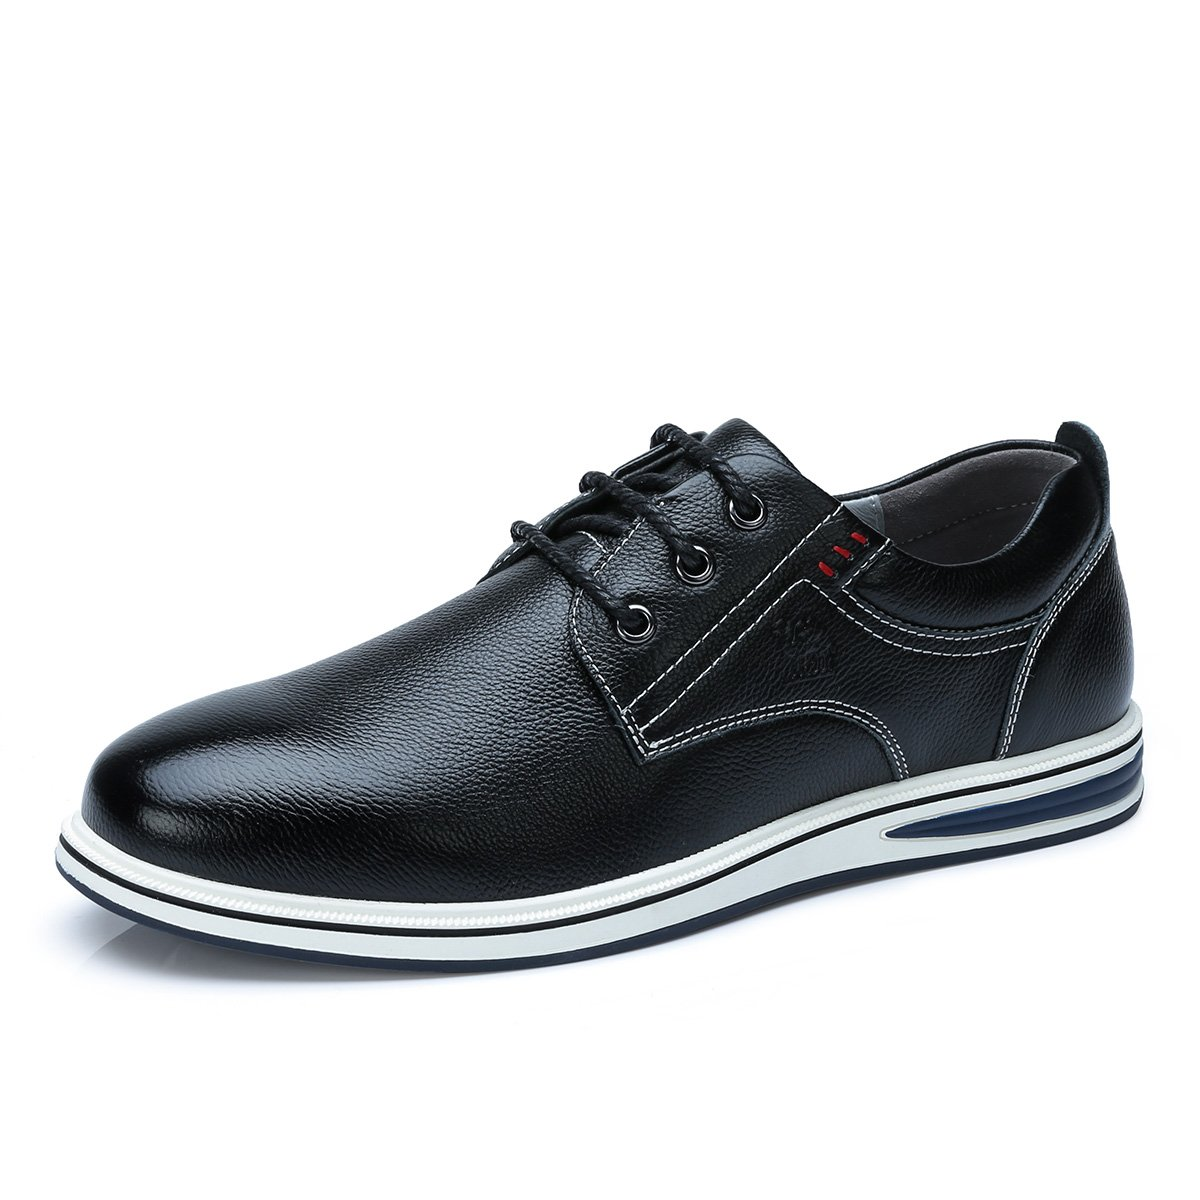 CAMEL CROWN Youth Fashion Casual Oxford Shoes,Business Casual Walk Oxford,Lace-up Sneaker